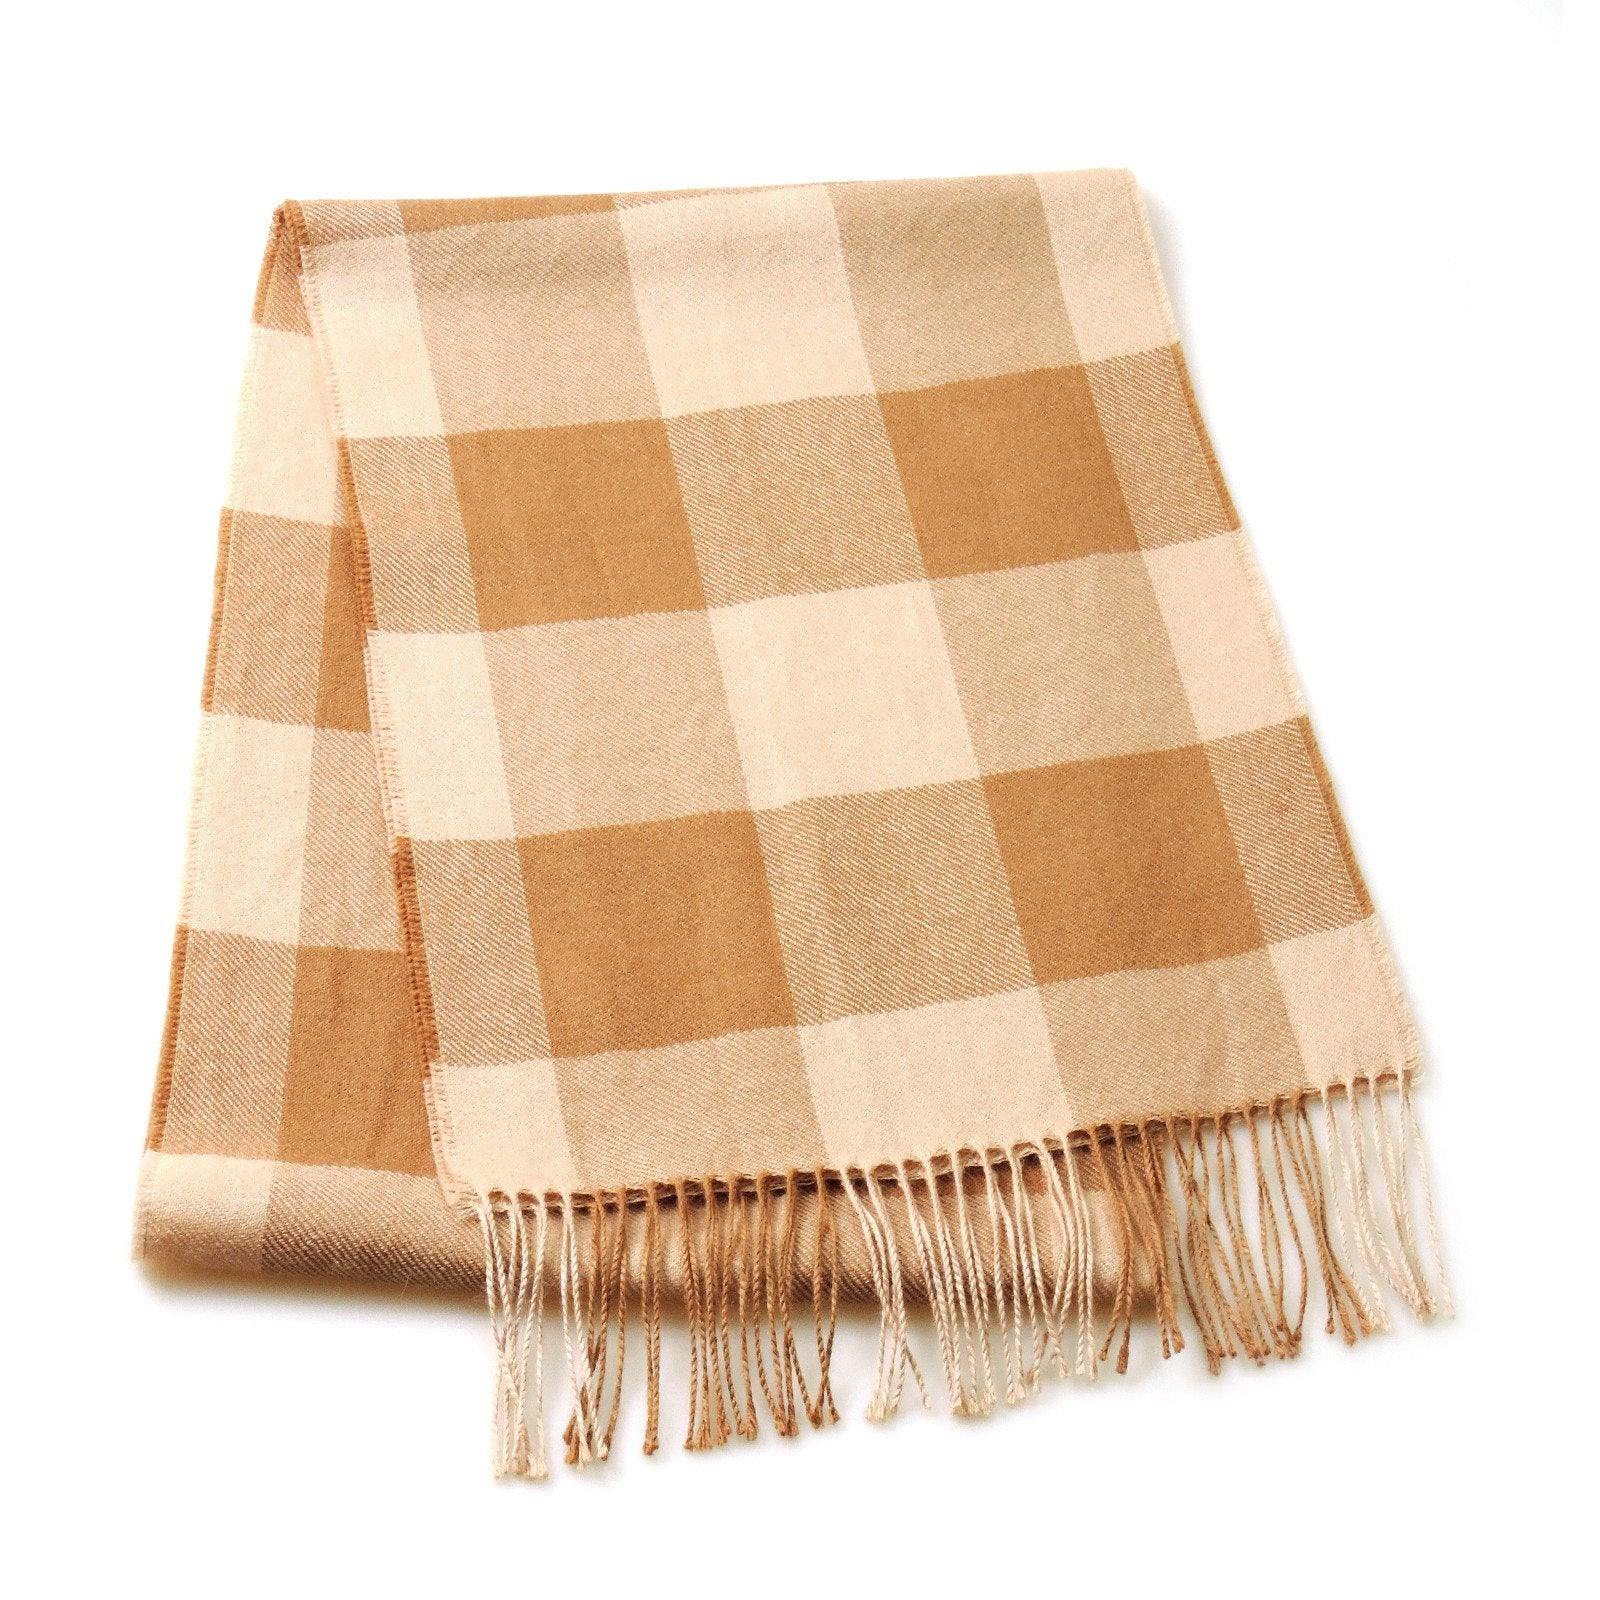 100% Baby Alpaca Plaid Scarf in Natural Colors - Qinti - The Peruvian Shop